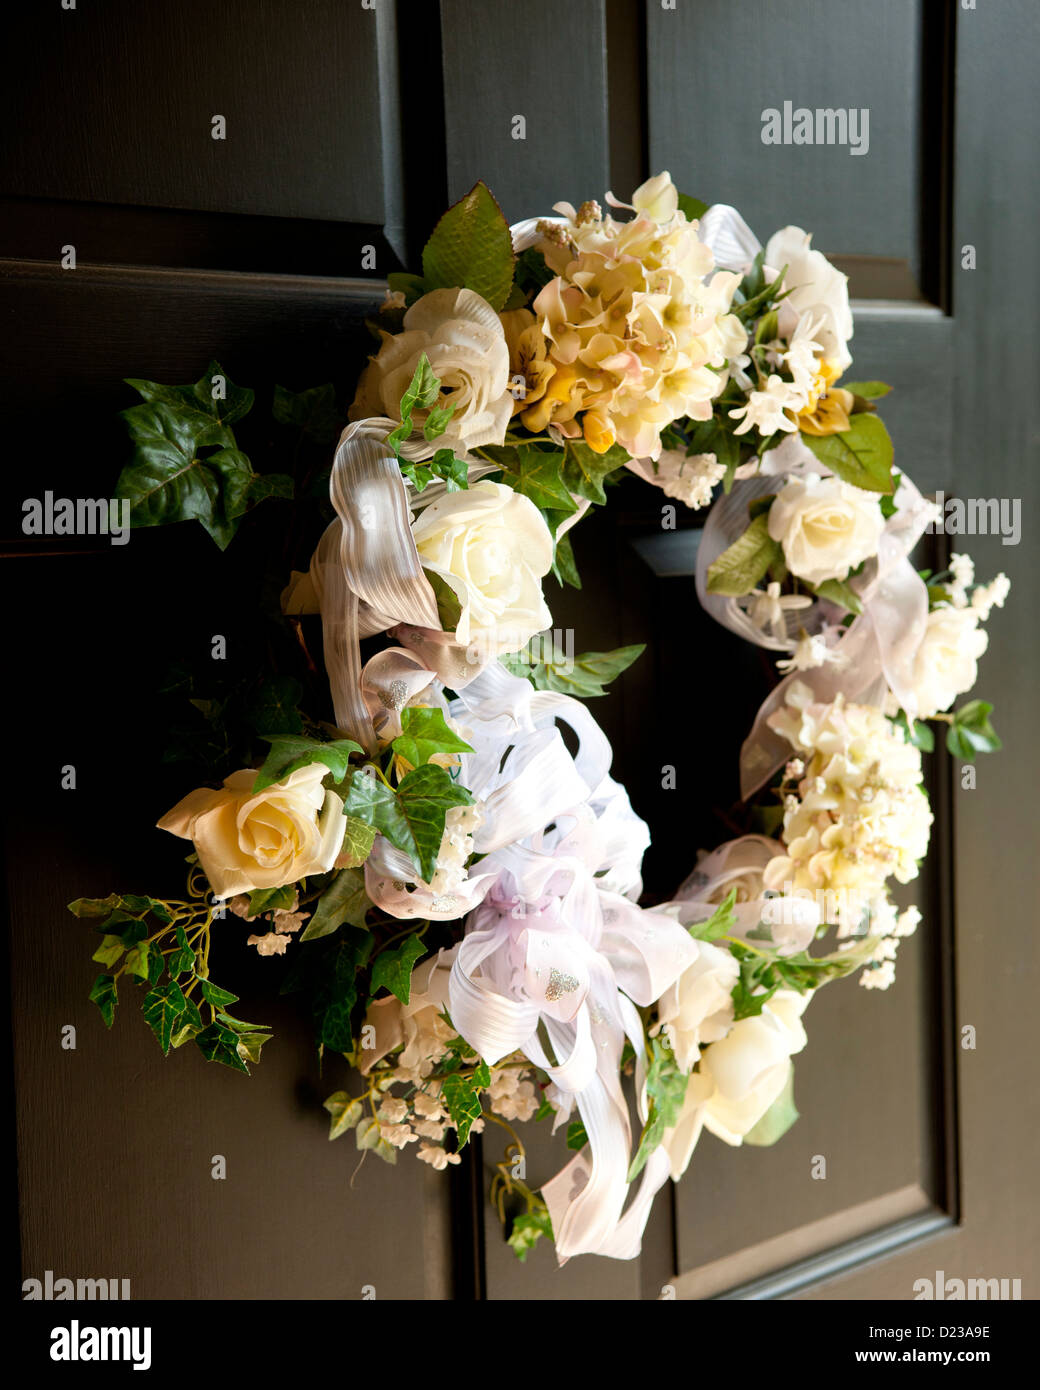 A wreath of white flowers on a black door wedding garland stock a wreath of white flowers on a black door wedding garland mightylinksfo